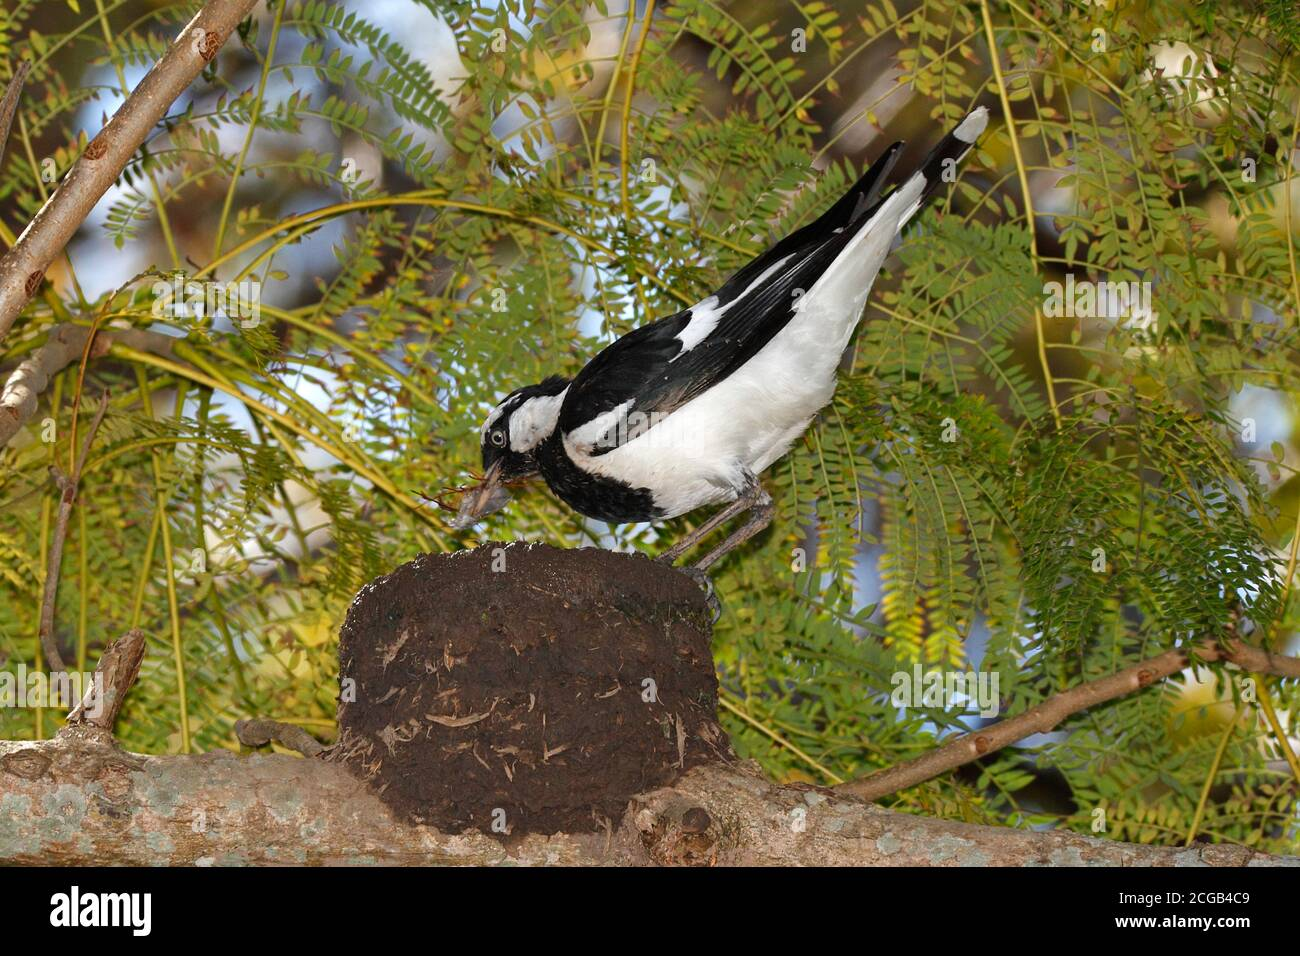 magpie-lark-also-known-as-peewee-peewit-or-mudlark-grallina-cyanoleuca-male-bird-building-nest-from-mud-and-grasses-which-can-be-seen-in-his-beak-2CGB4C9.jpg